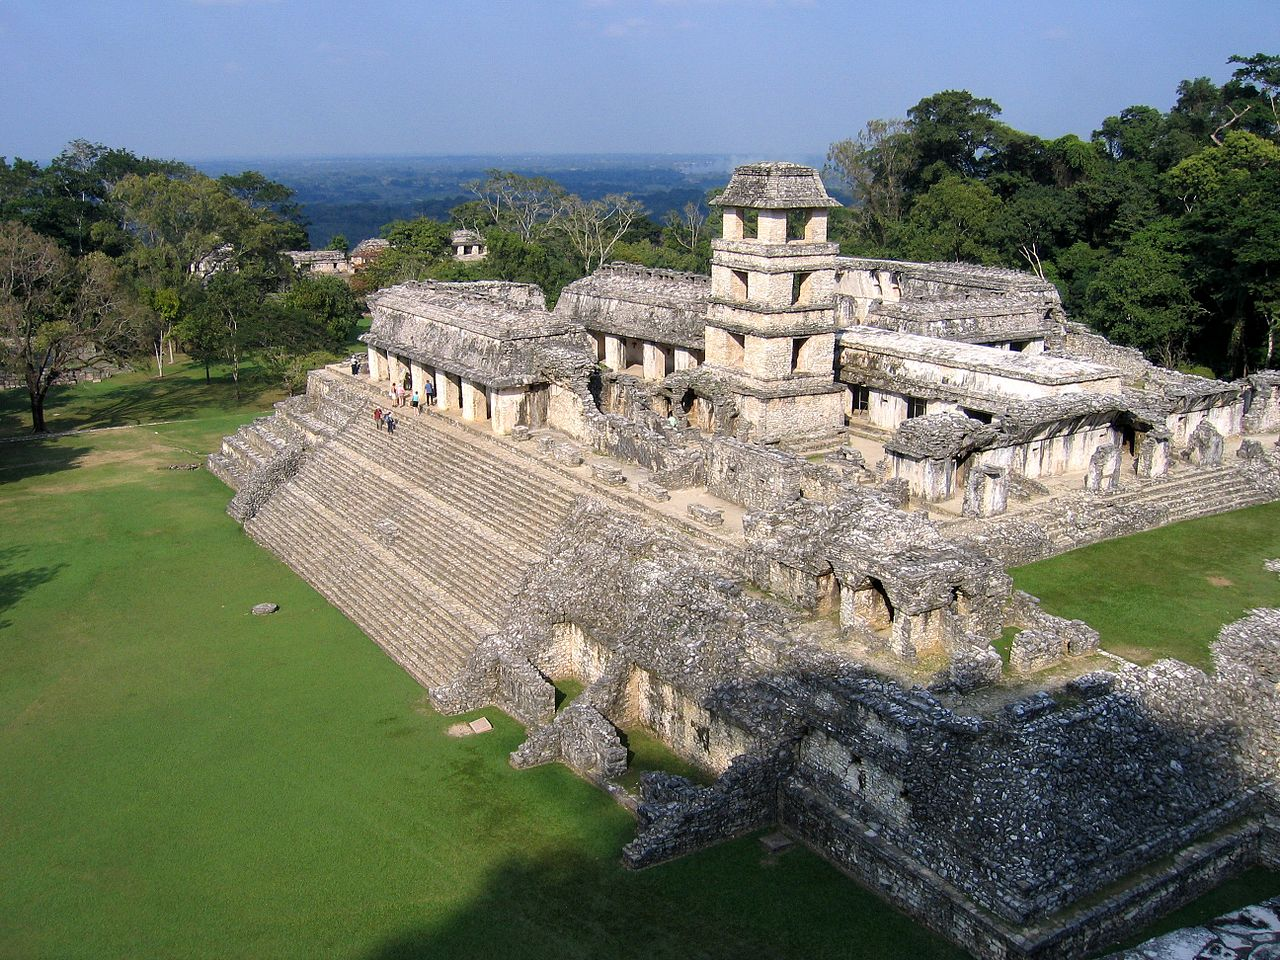 Classic Period royal palace at Palenque. Peter Andersen  - CC BY-SA 3.0